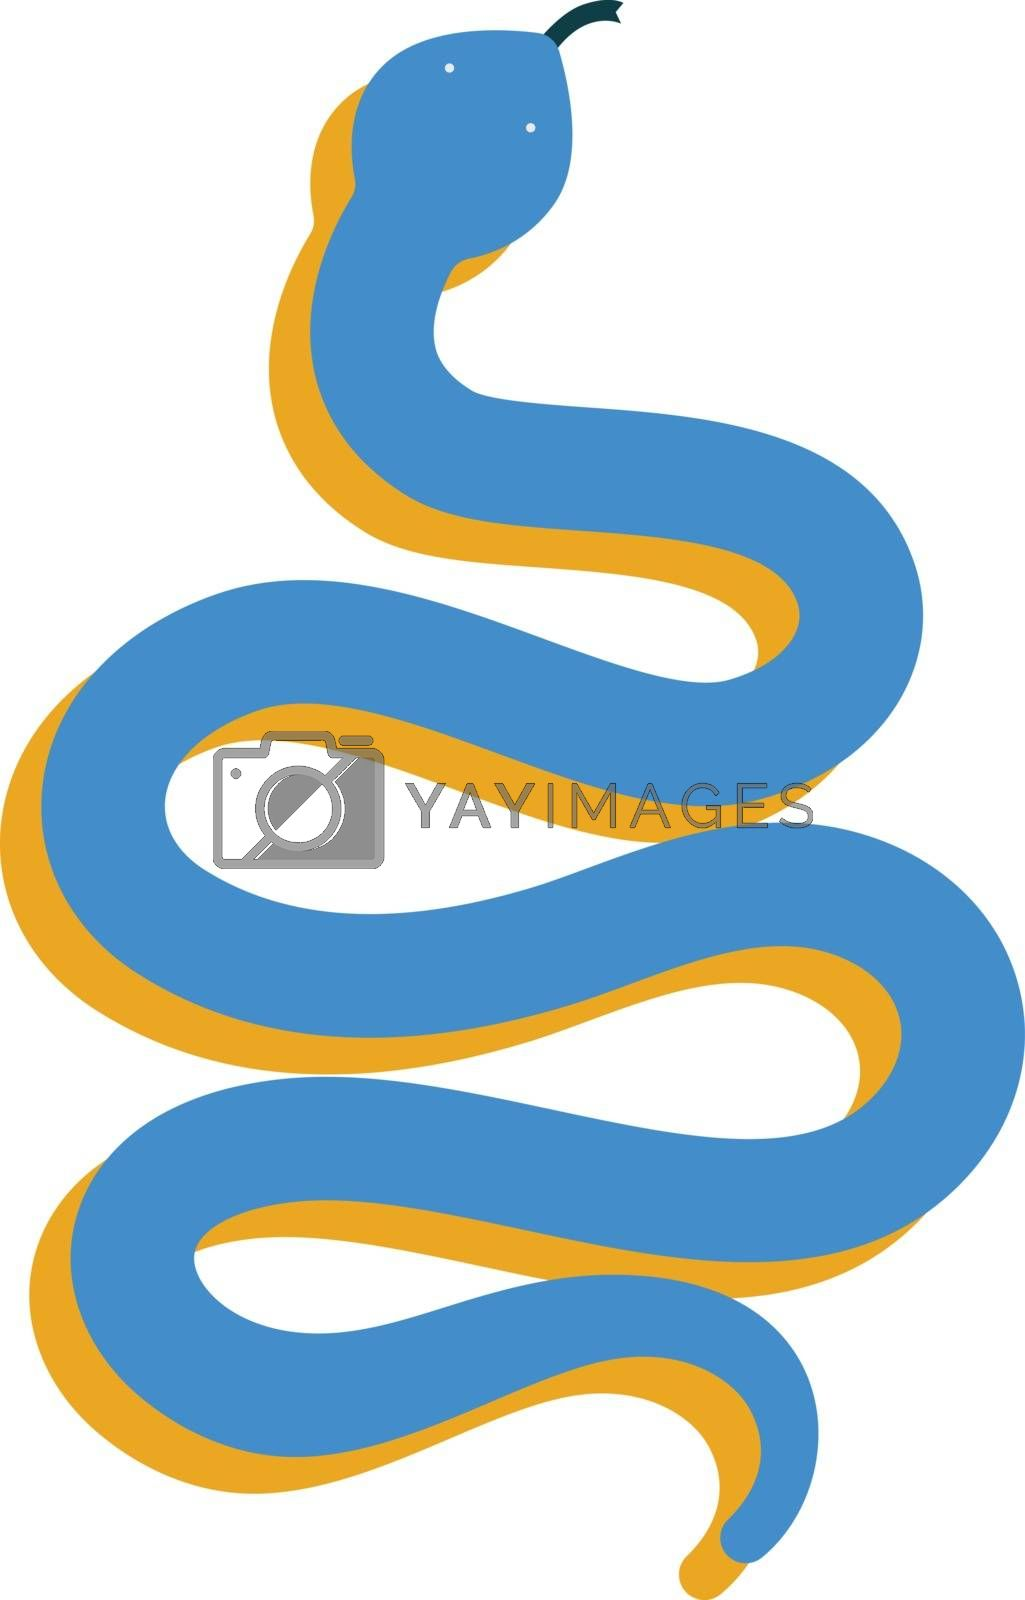 Royalty free image of Clipart of a blue-colored slithering snake vector or color illus by Morphart